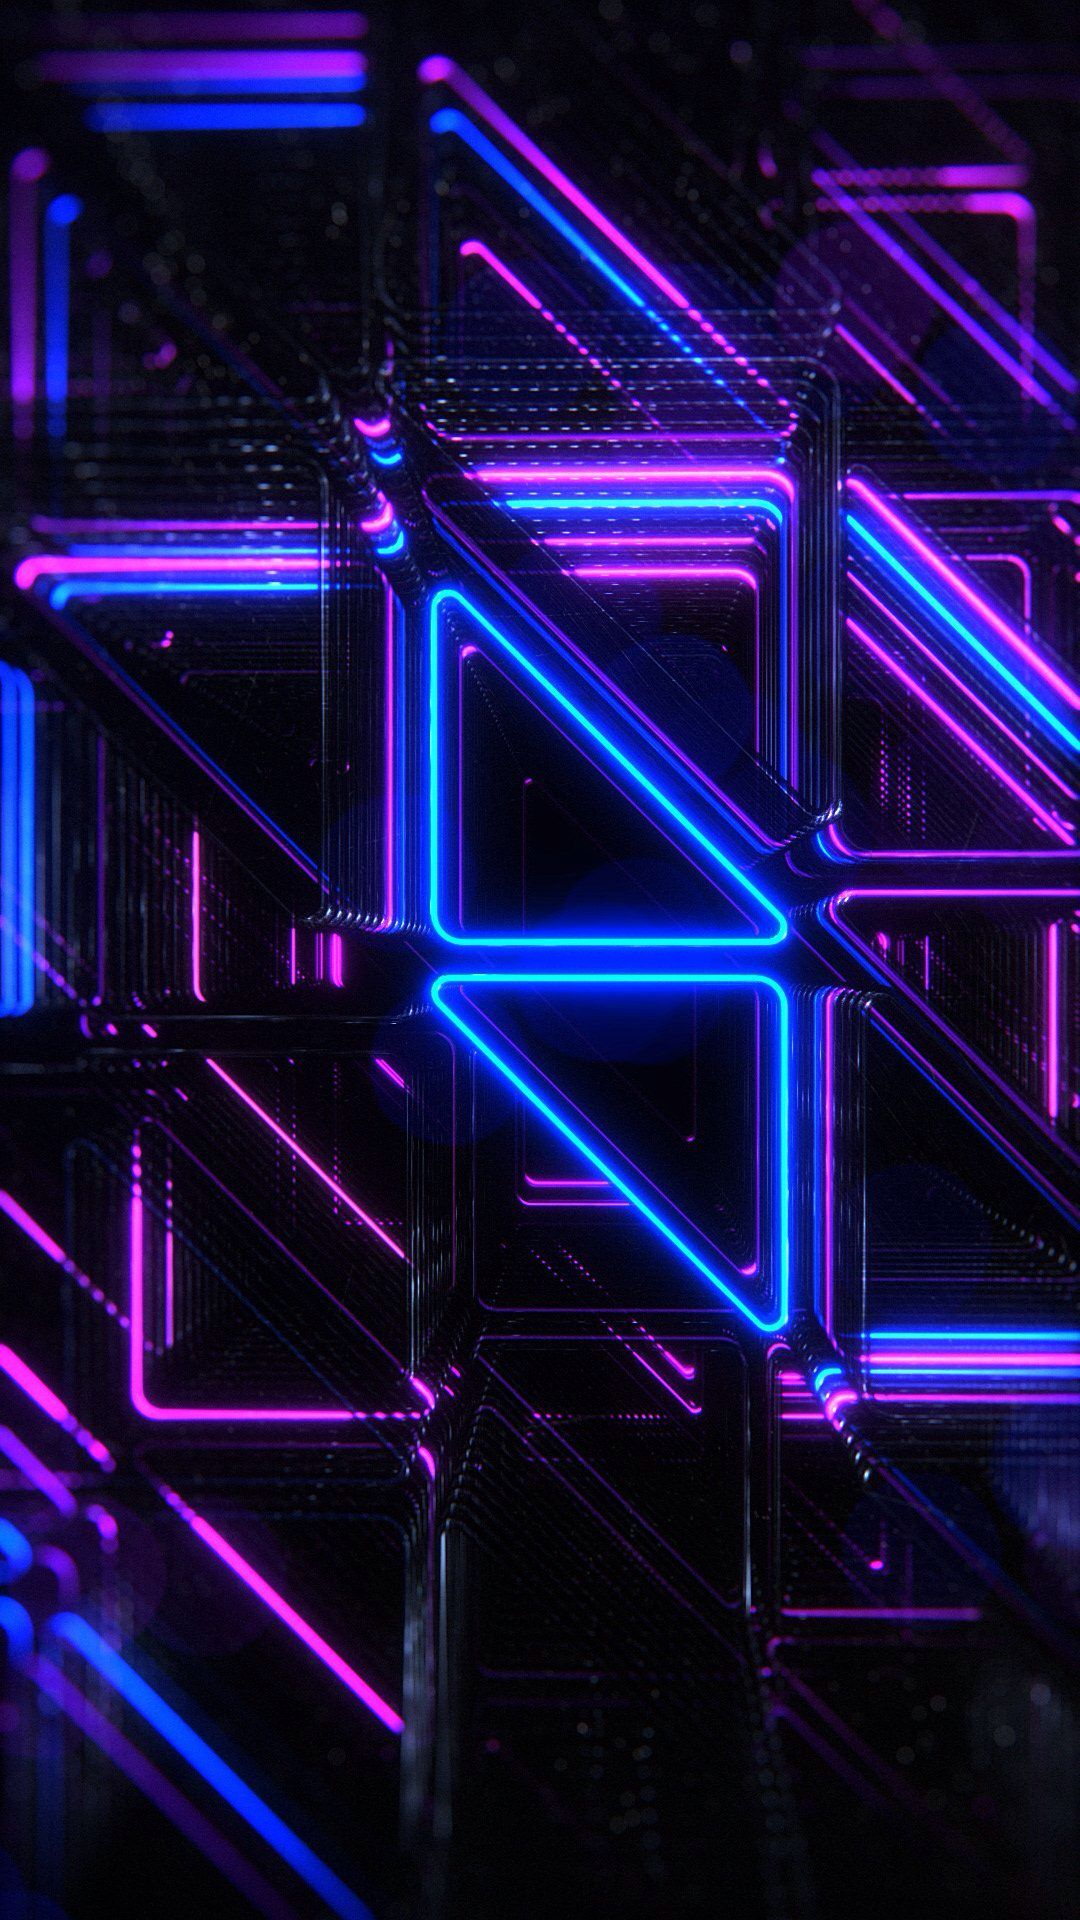 Pin by Koty Holmes on Wallpaper (With images) Neon